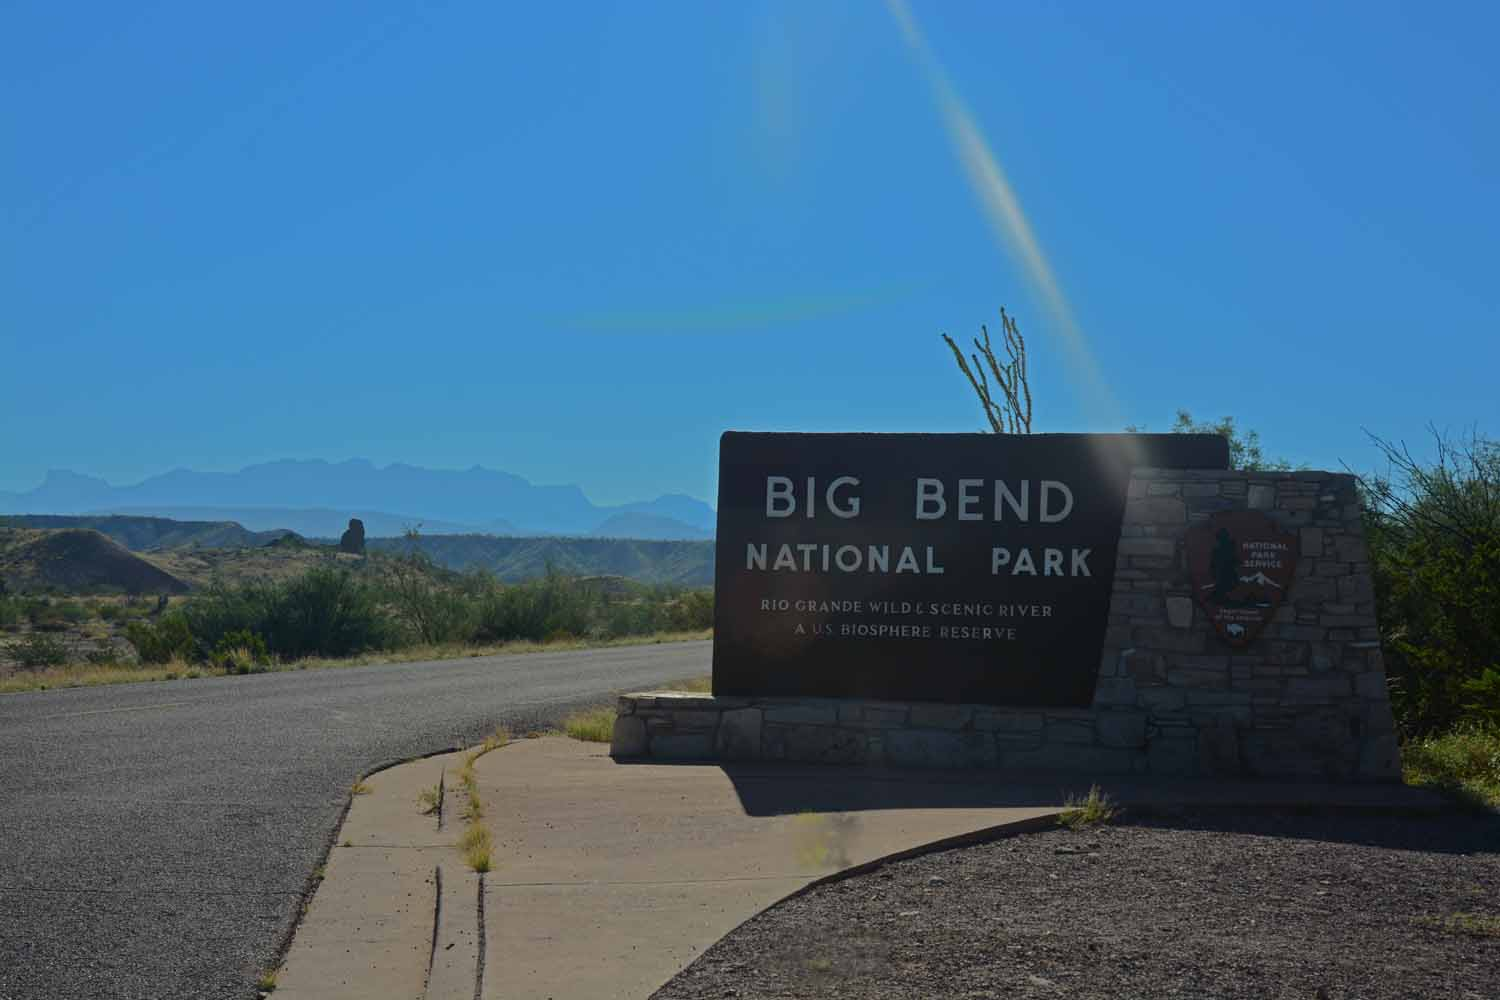 Looking forward to checking out the Big Bend National Park.  This park has been on our list for a long time.  Good to be here now!